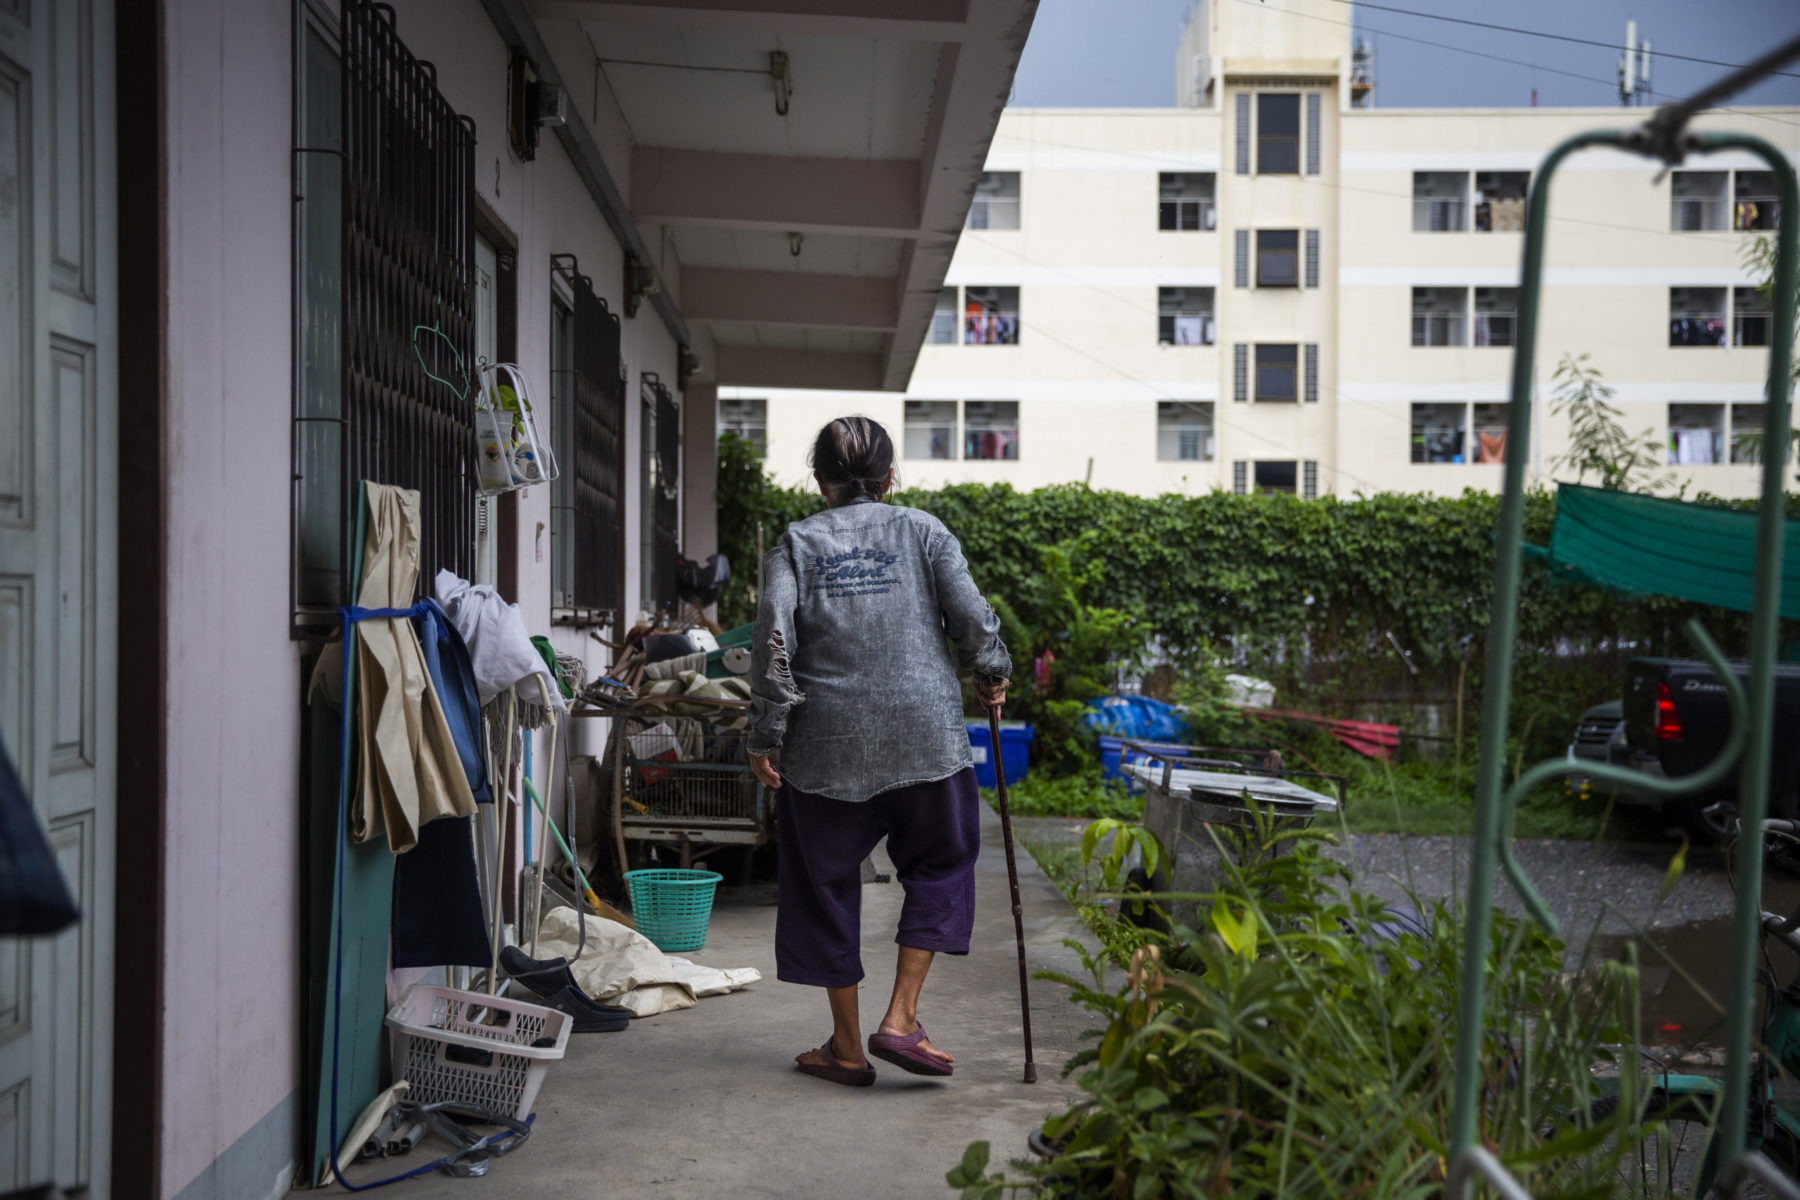 A person leaning on a cane walks outside their home.